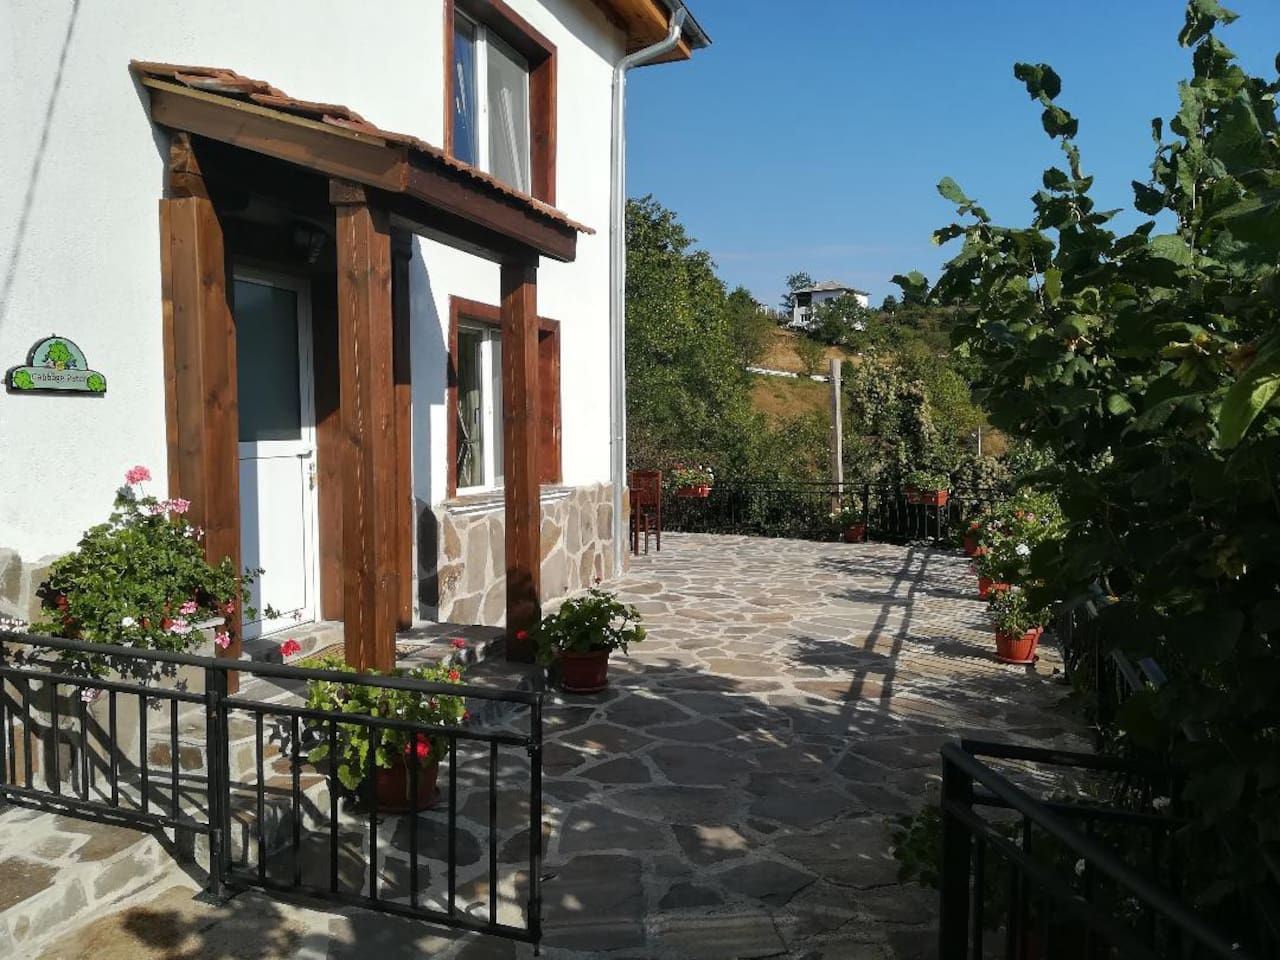 The Cabbage Patch,  newly refurbished with spacious private terrace. Peace and tranquillity in the Rhodopes with stunning rural views across the mountains and local vegetable gardens.